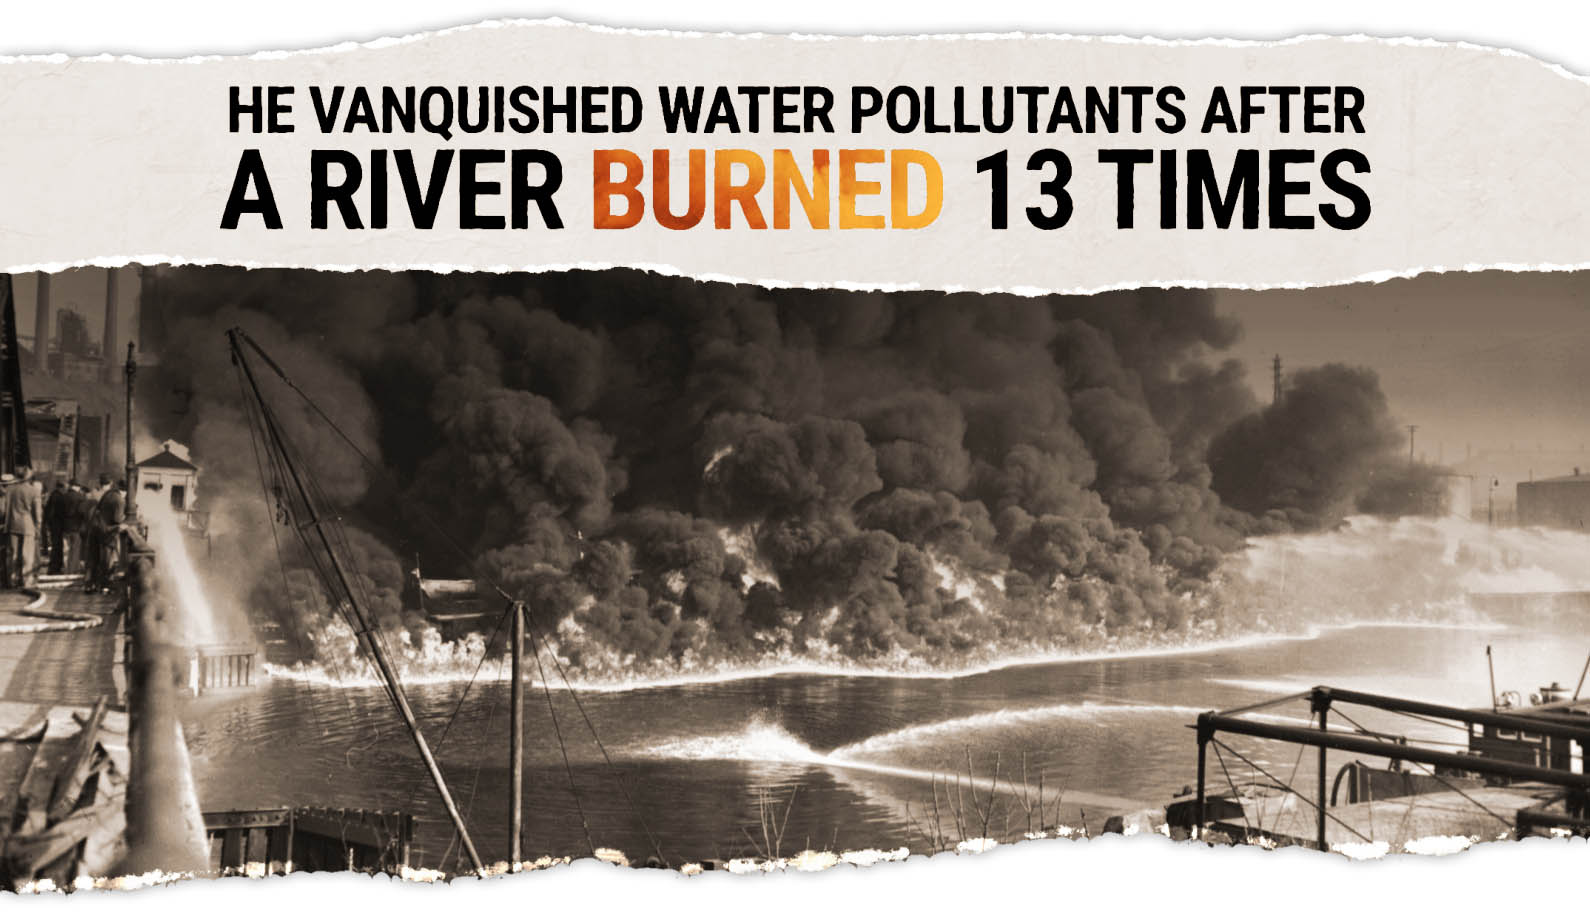 He Vanquished Water Pollutants After a River Burned 13 Times